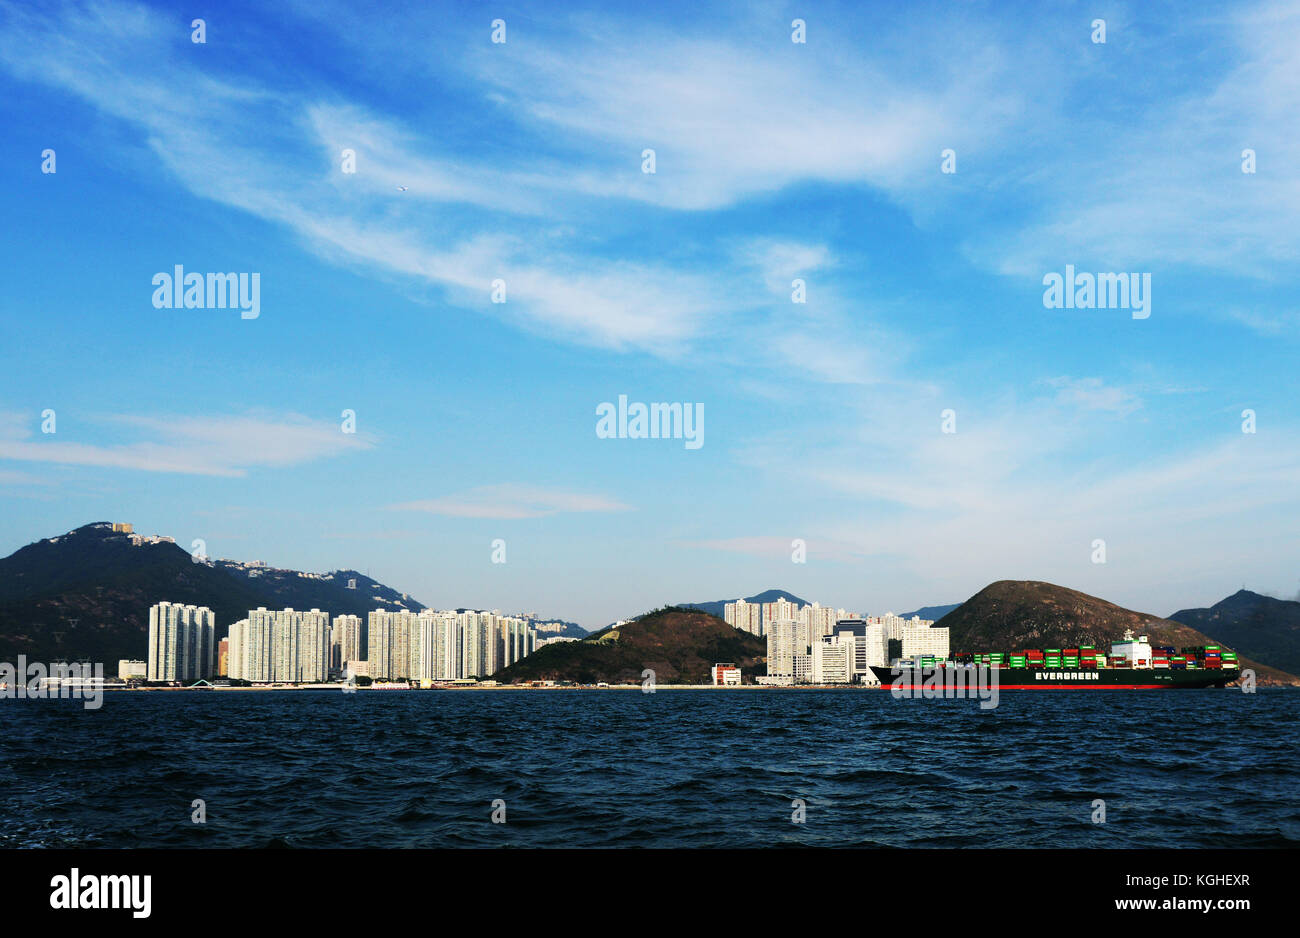 A scenic view of Ap Lei Chau island as seen from the East Lamma Channel. - Stock Image